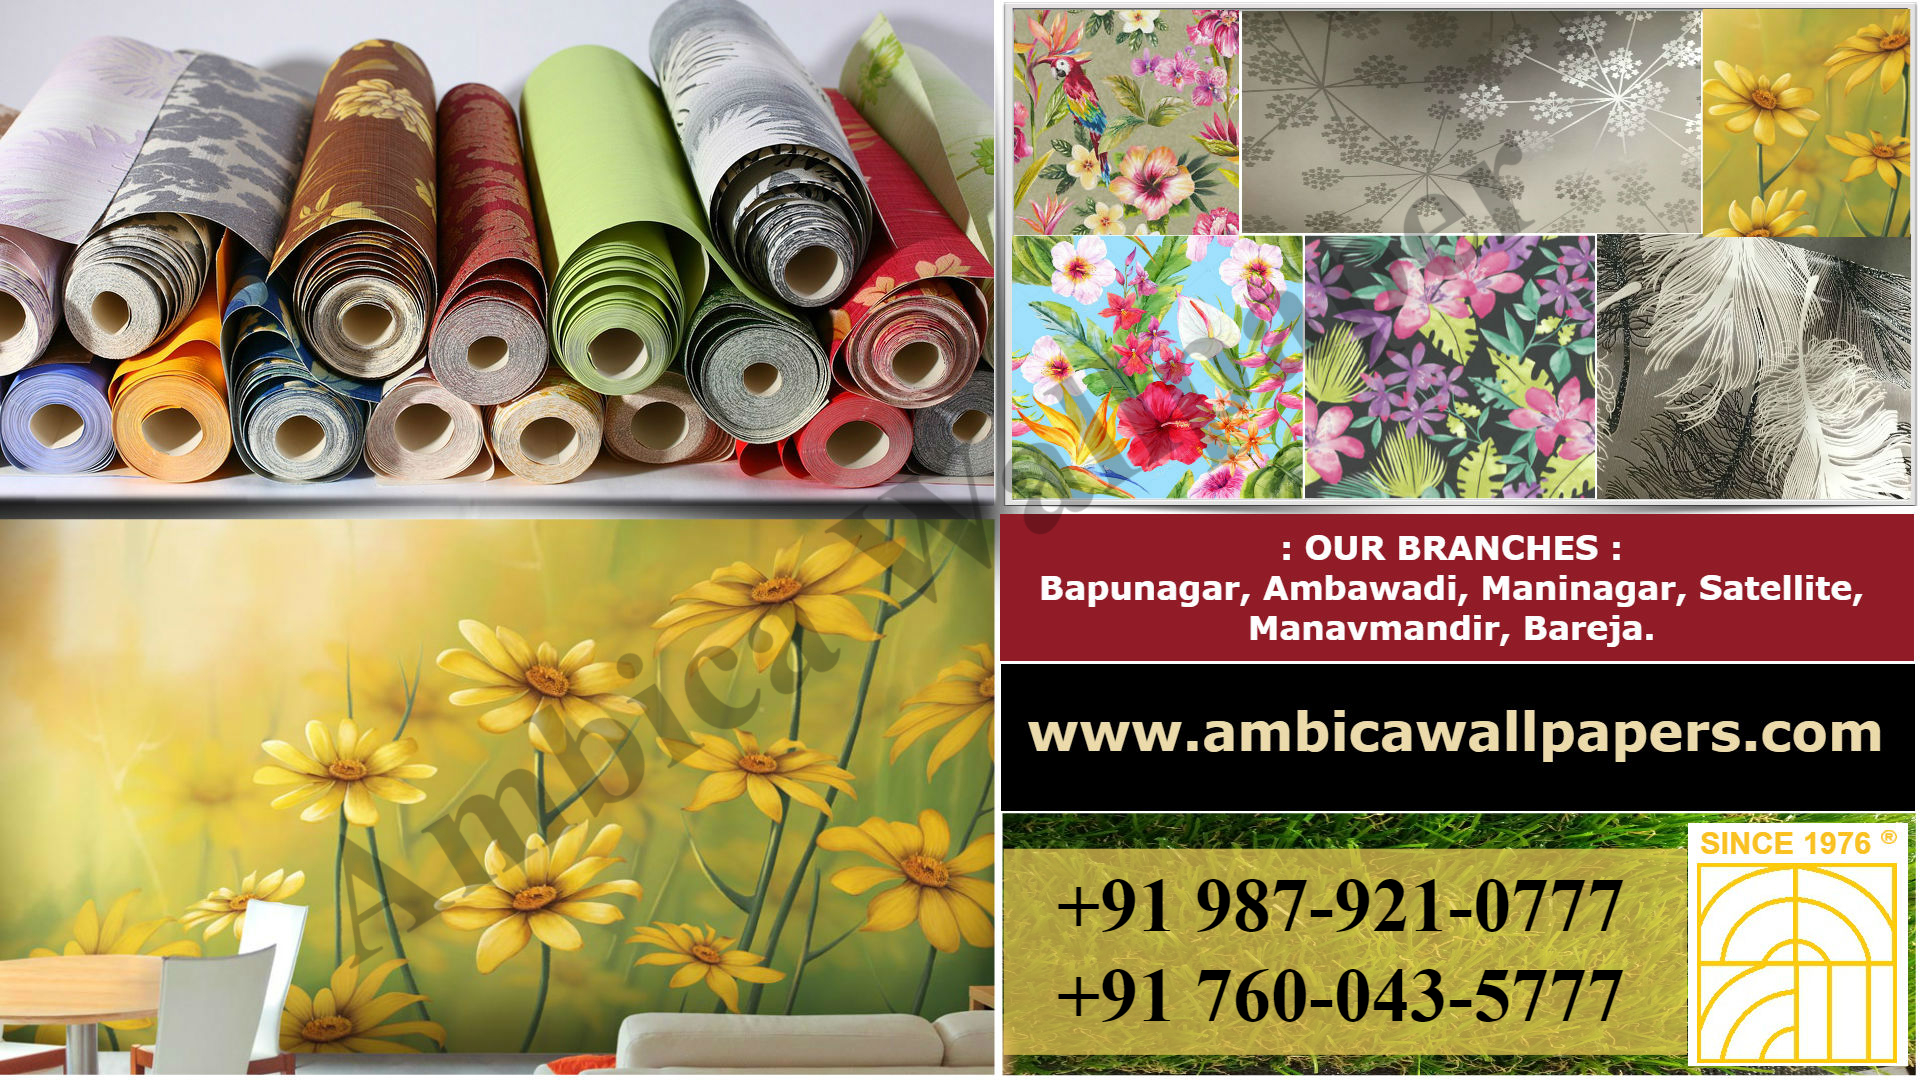 Image for Ambica Wallpaper